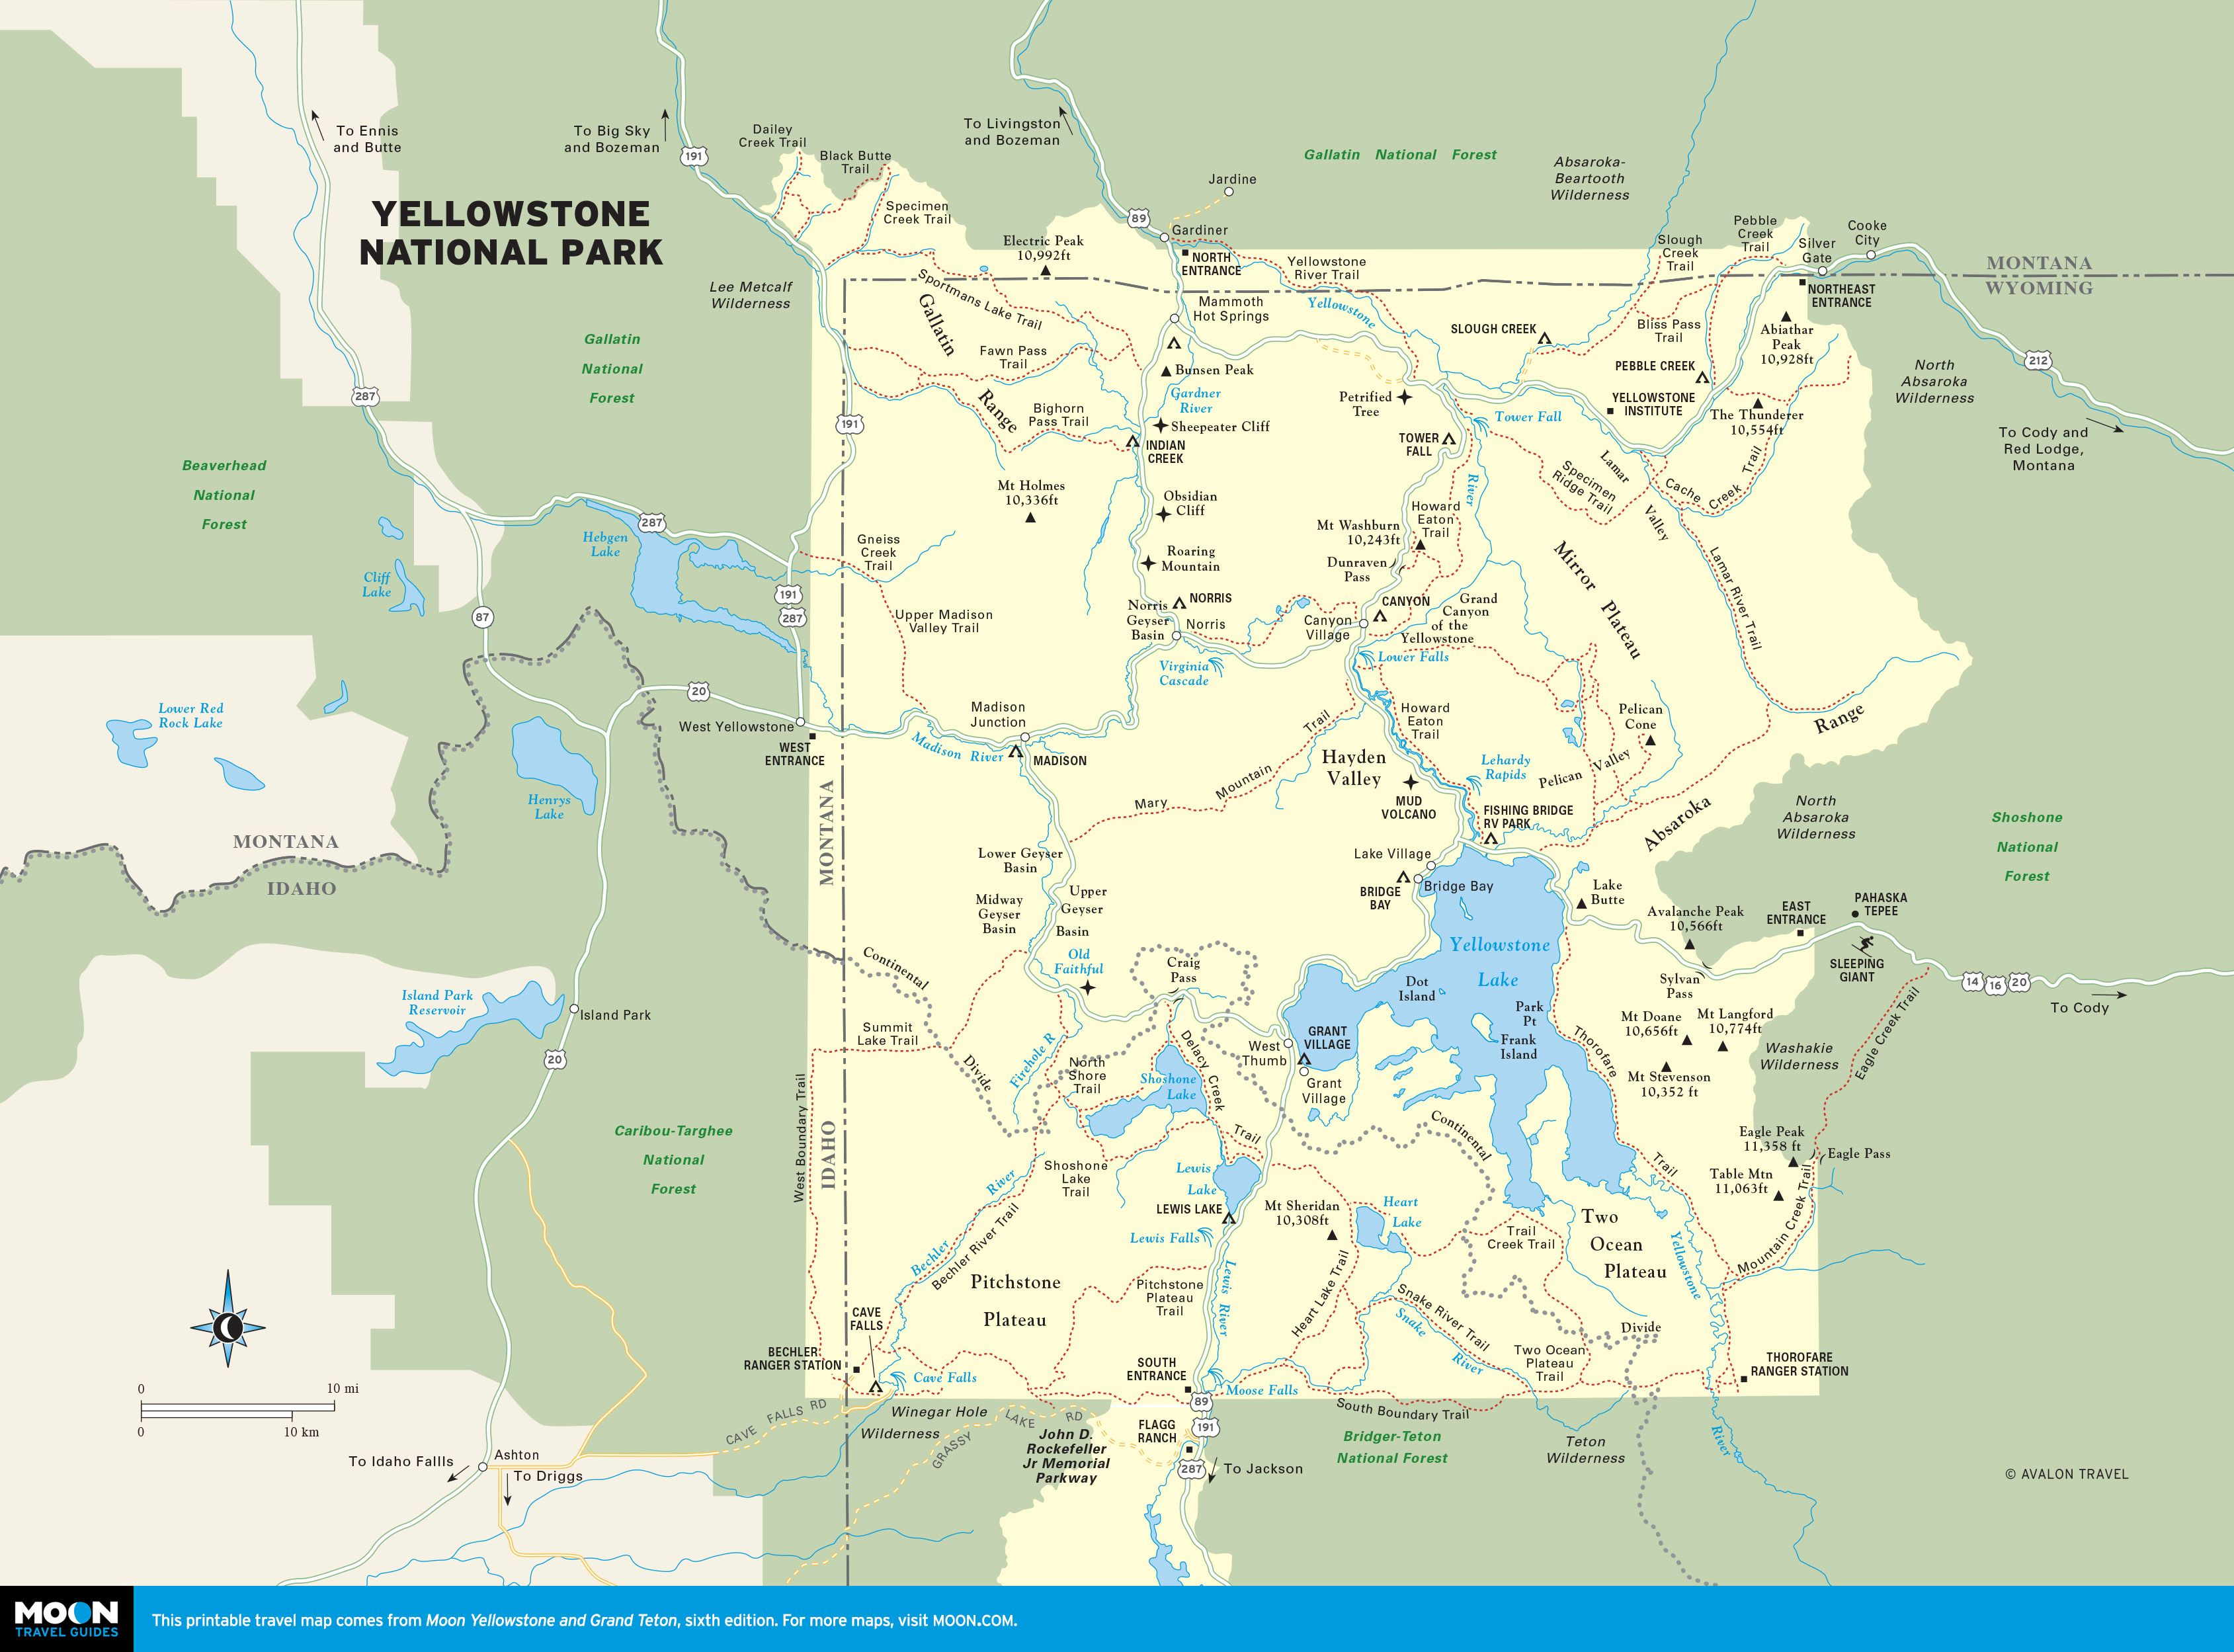 Rocky Mountains Wyoming Map.Yellowstone Park Wyoming 6 Hr Drive To Old Faithful From Ketchum